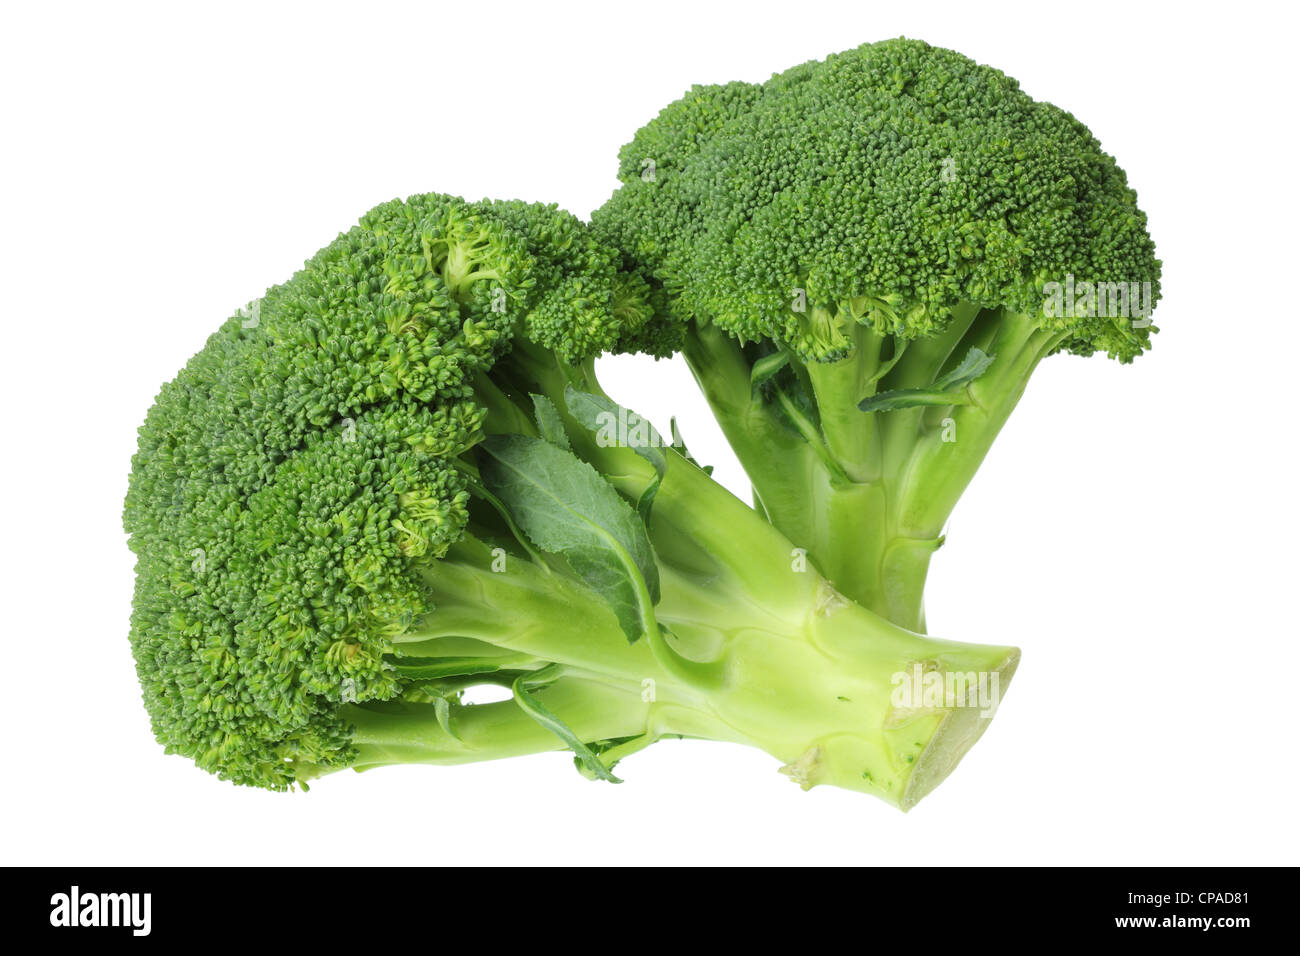 Broccoli Stock Photo